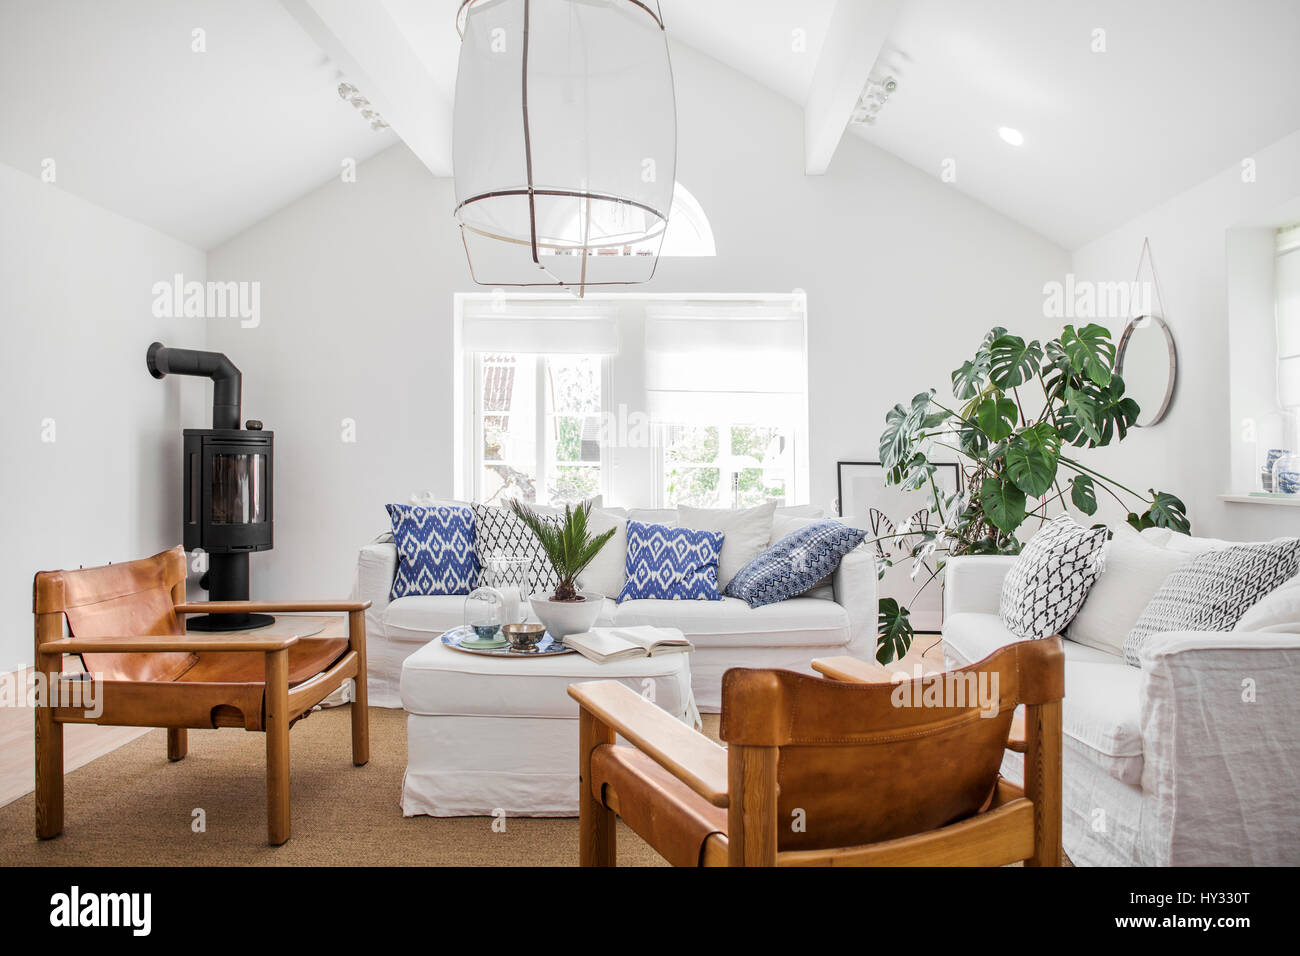 Sweden, Living room with white sofas and wooden chairs - Stock Image